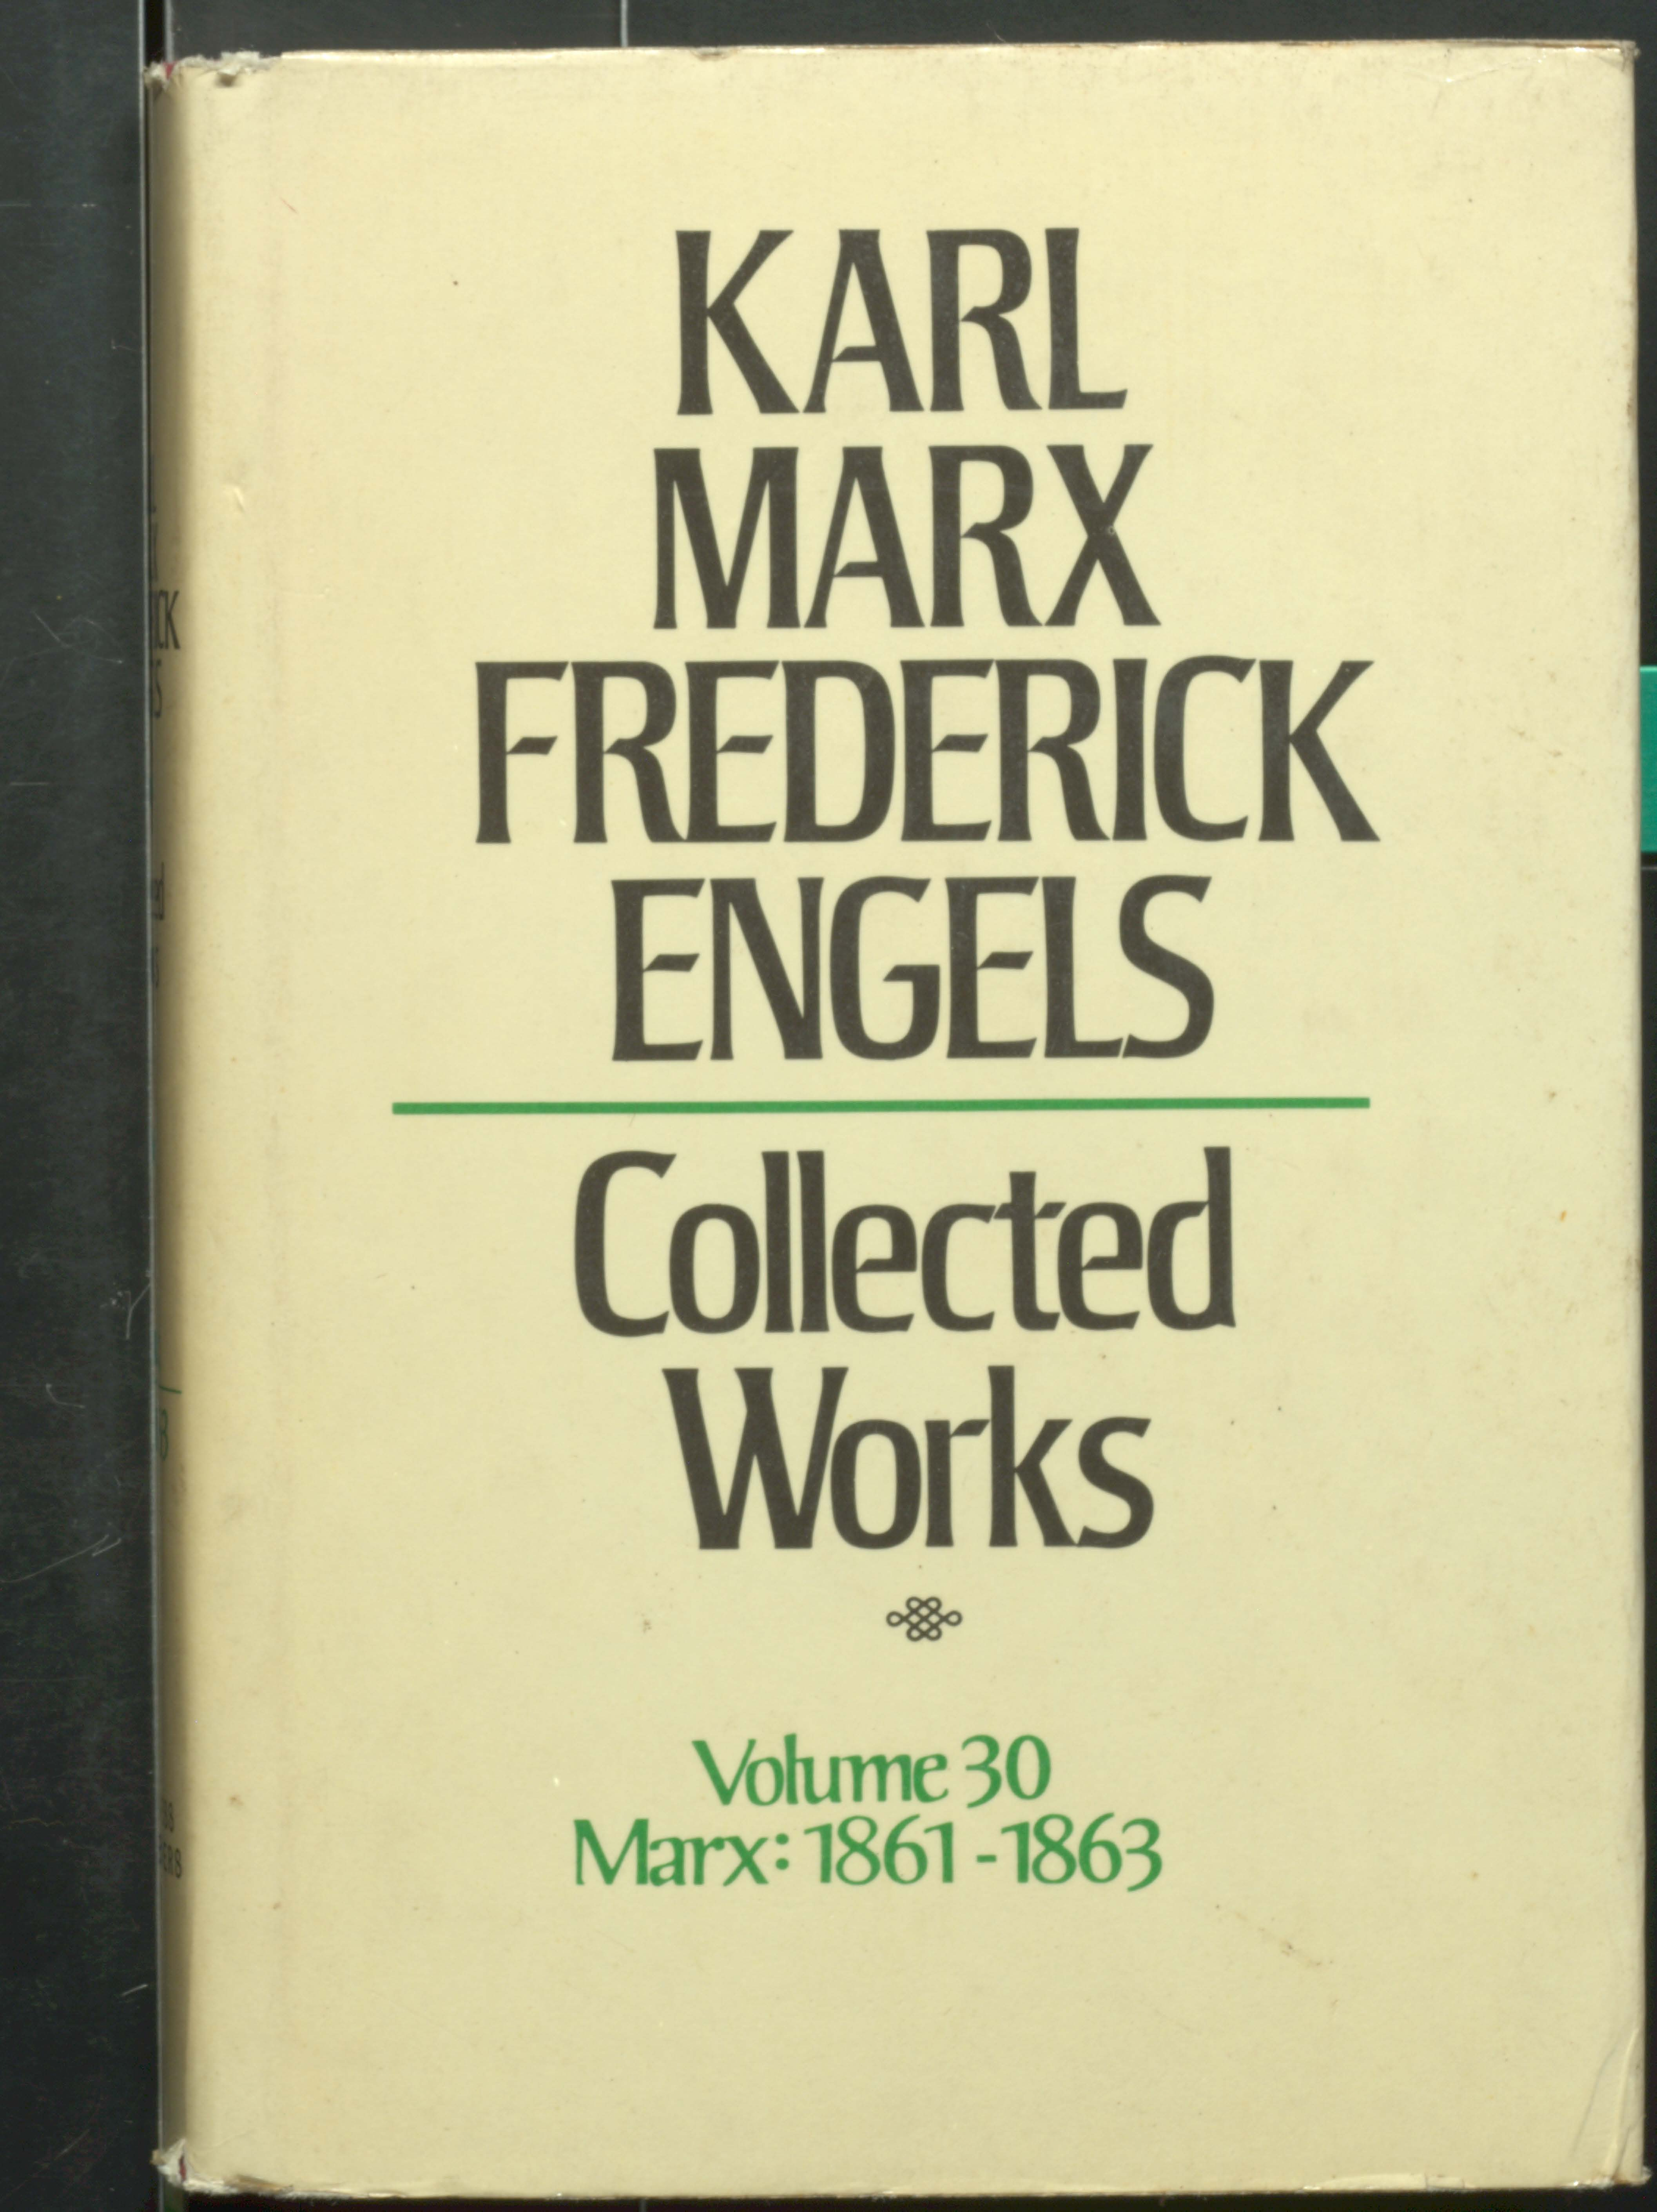 Karl marx frederick engels collected works volume 30 Marx(1861-1863)